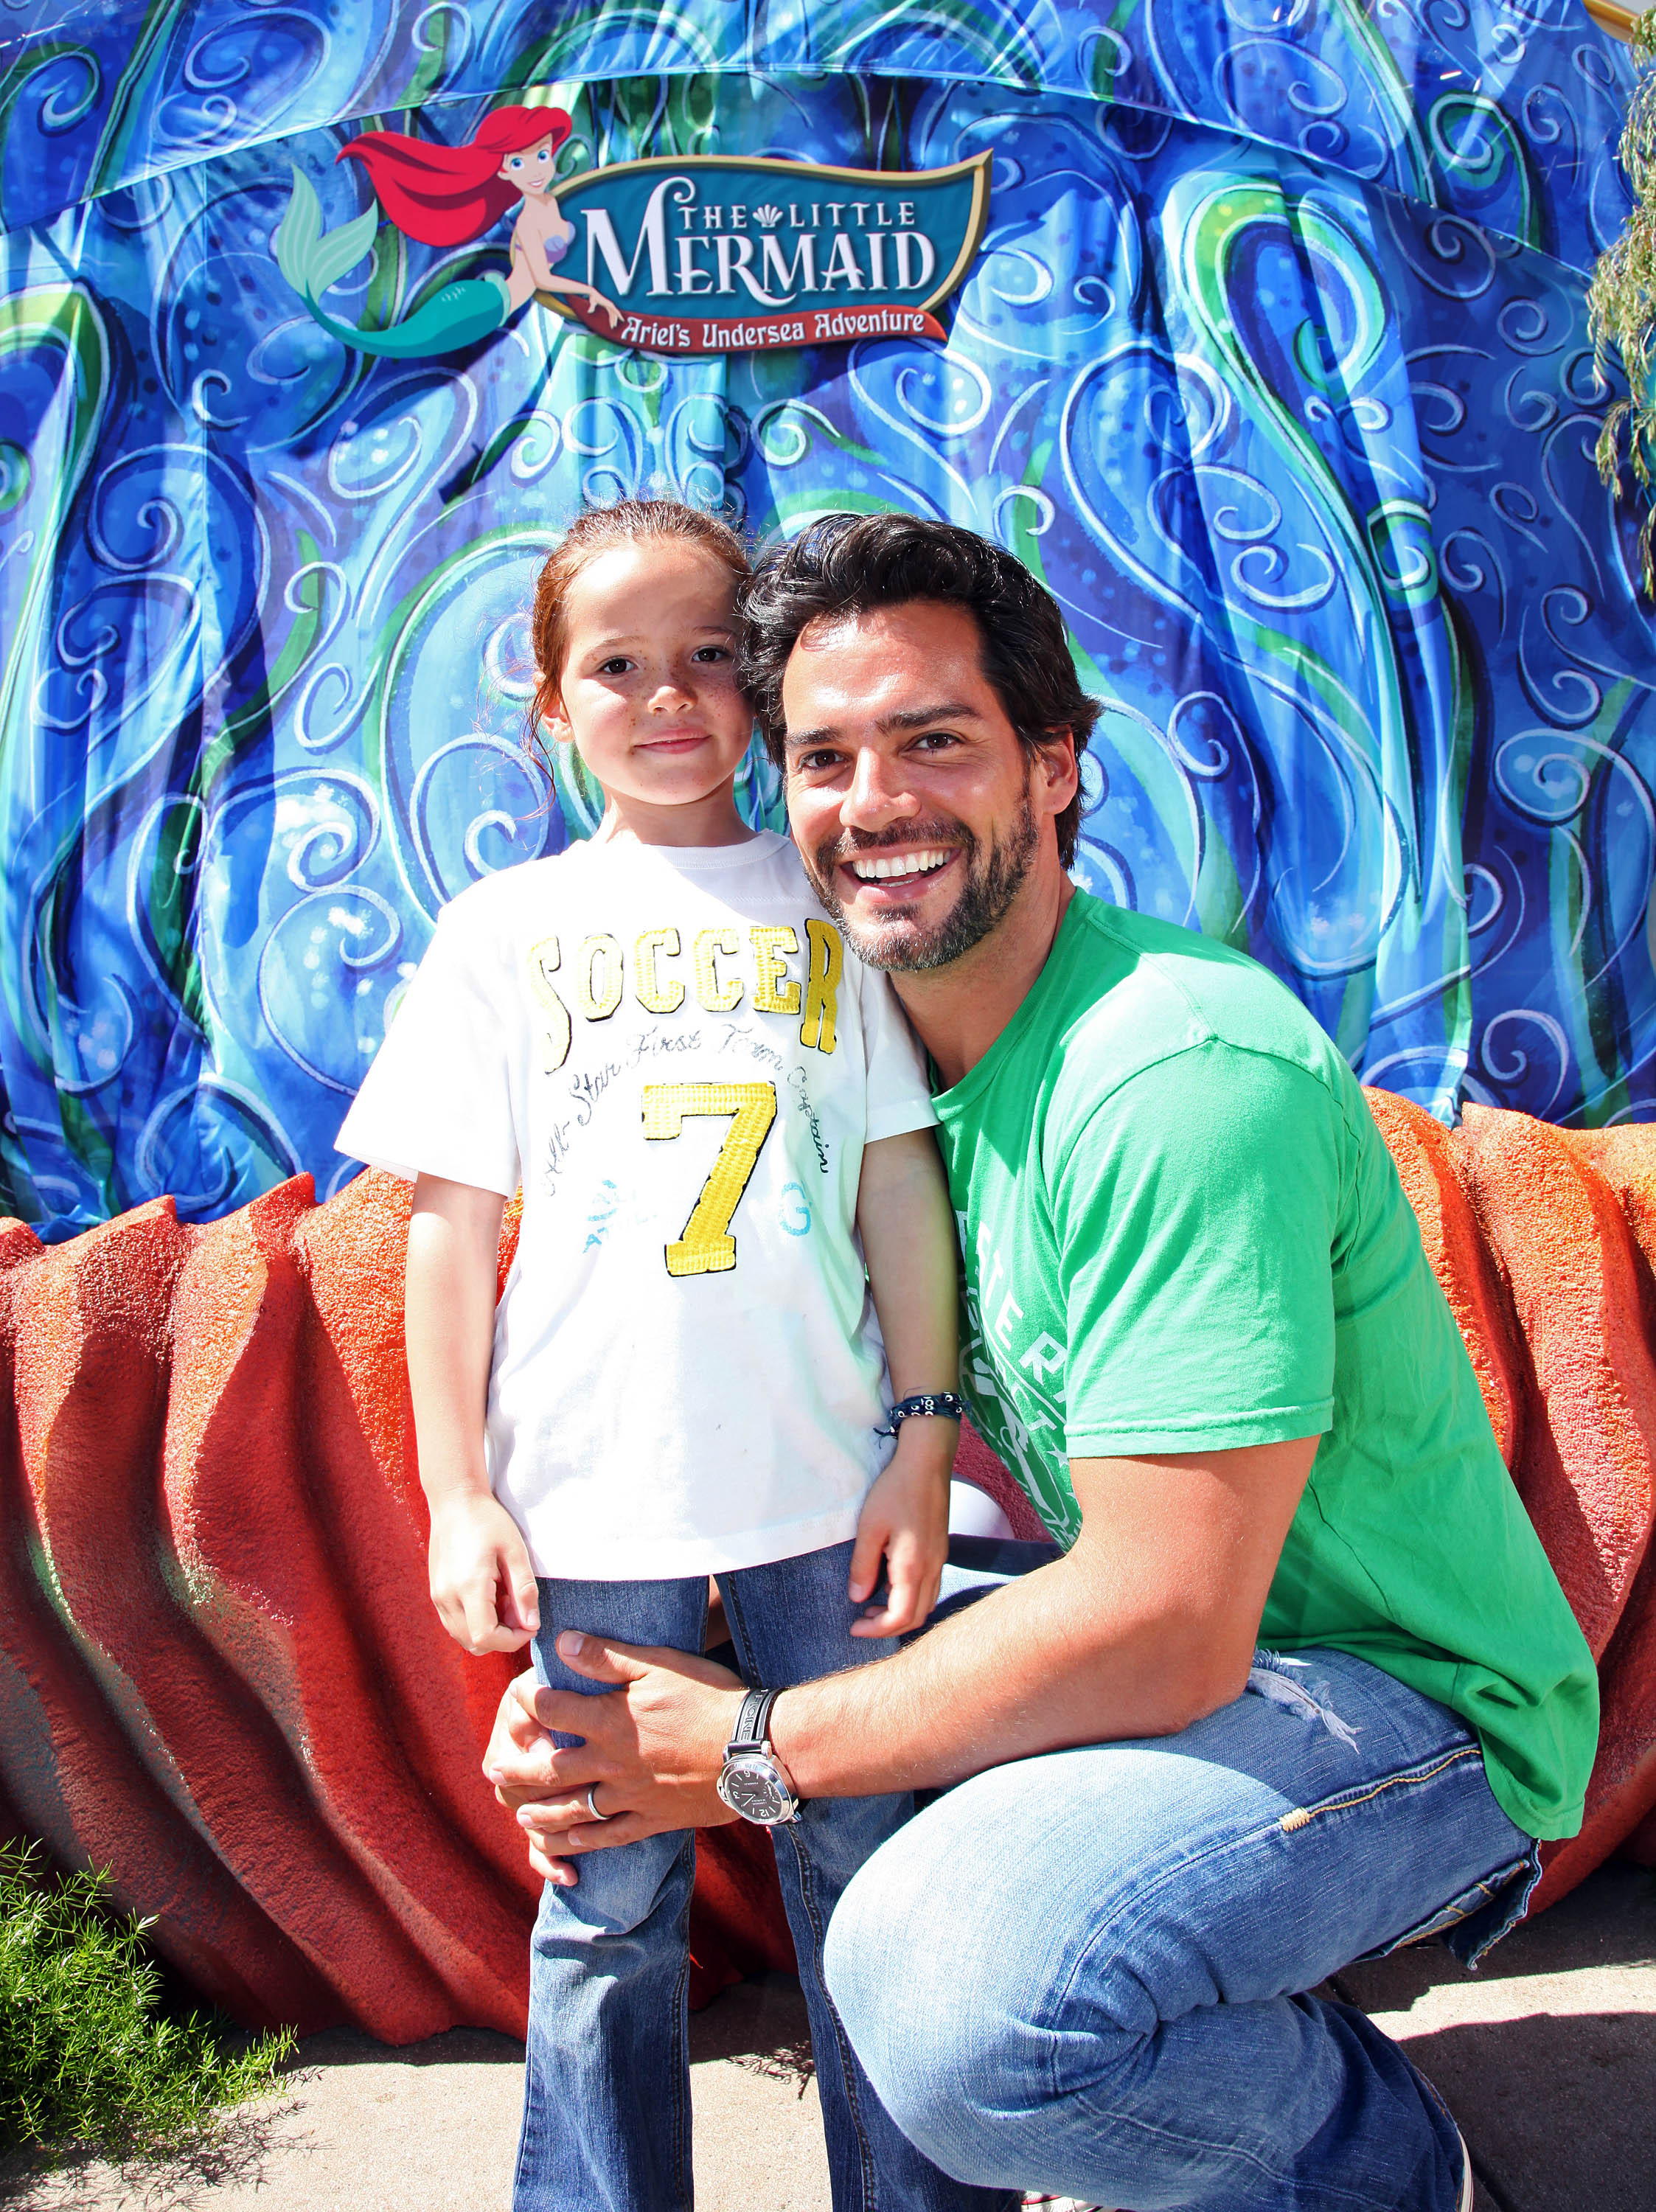 Grand opening ceremony for ÔThe Little Mermaid ~ ArielÕs Undersea Adventure